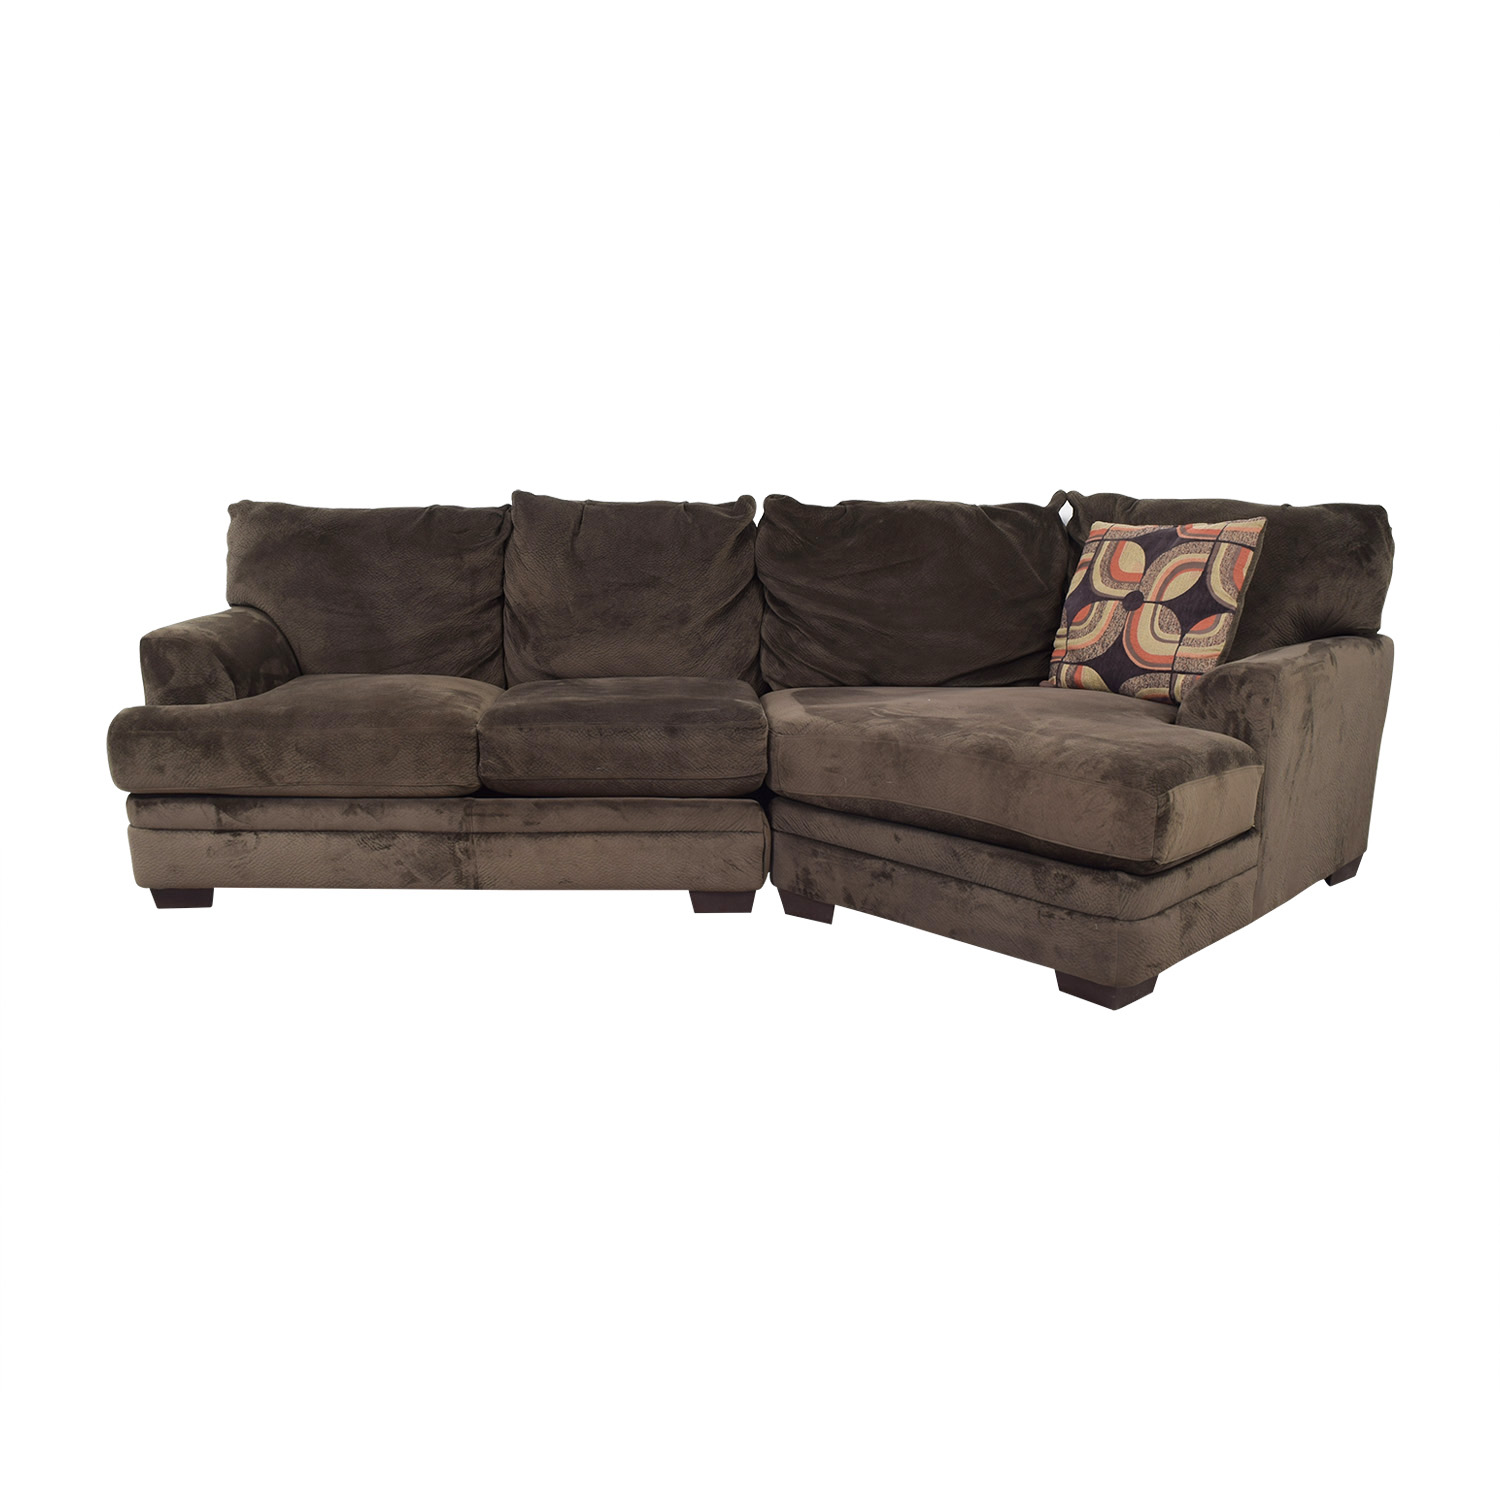 Wondrous 86 Off Bobs Discount Furniture Bobs Furniture Microfiber Sectional Sofas Beutiful Home Inspiration Truamahrainfo